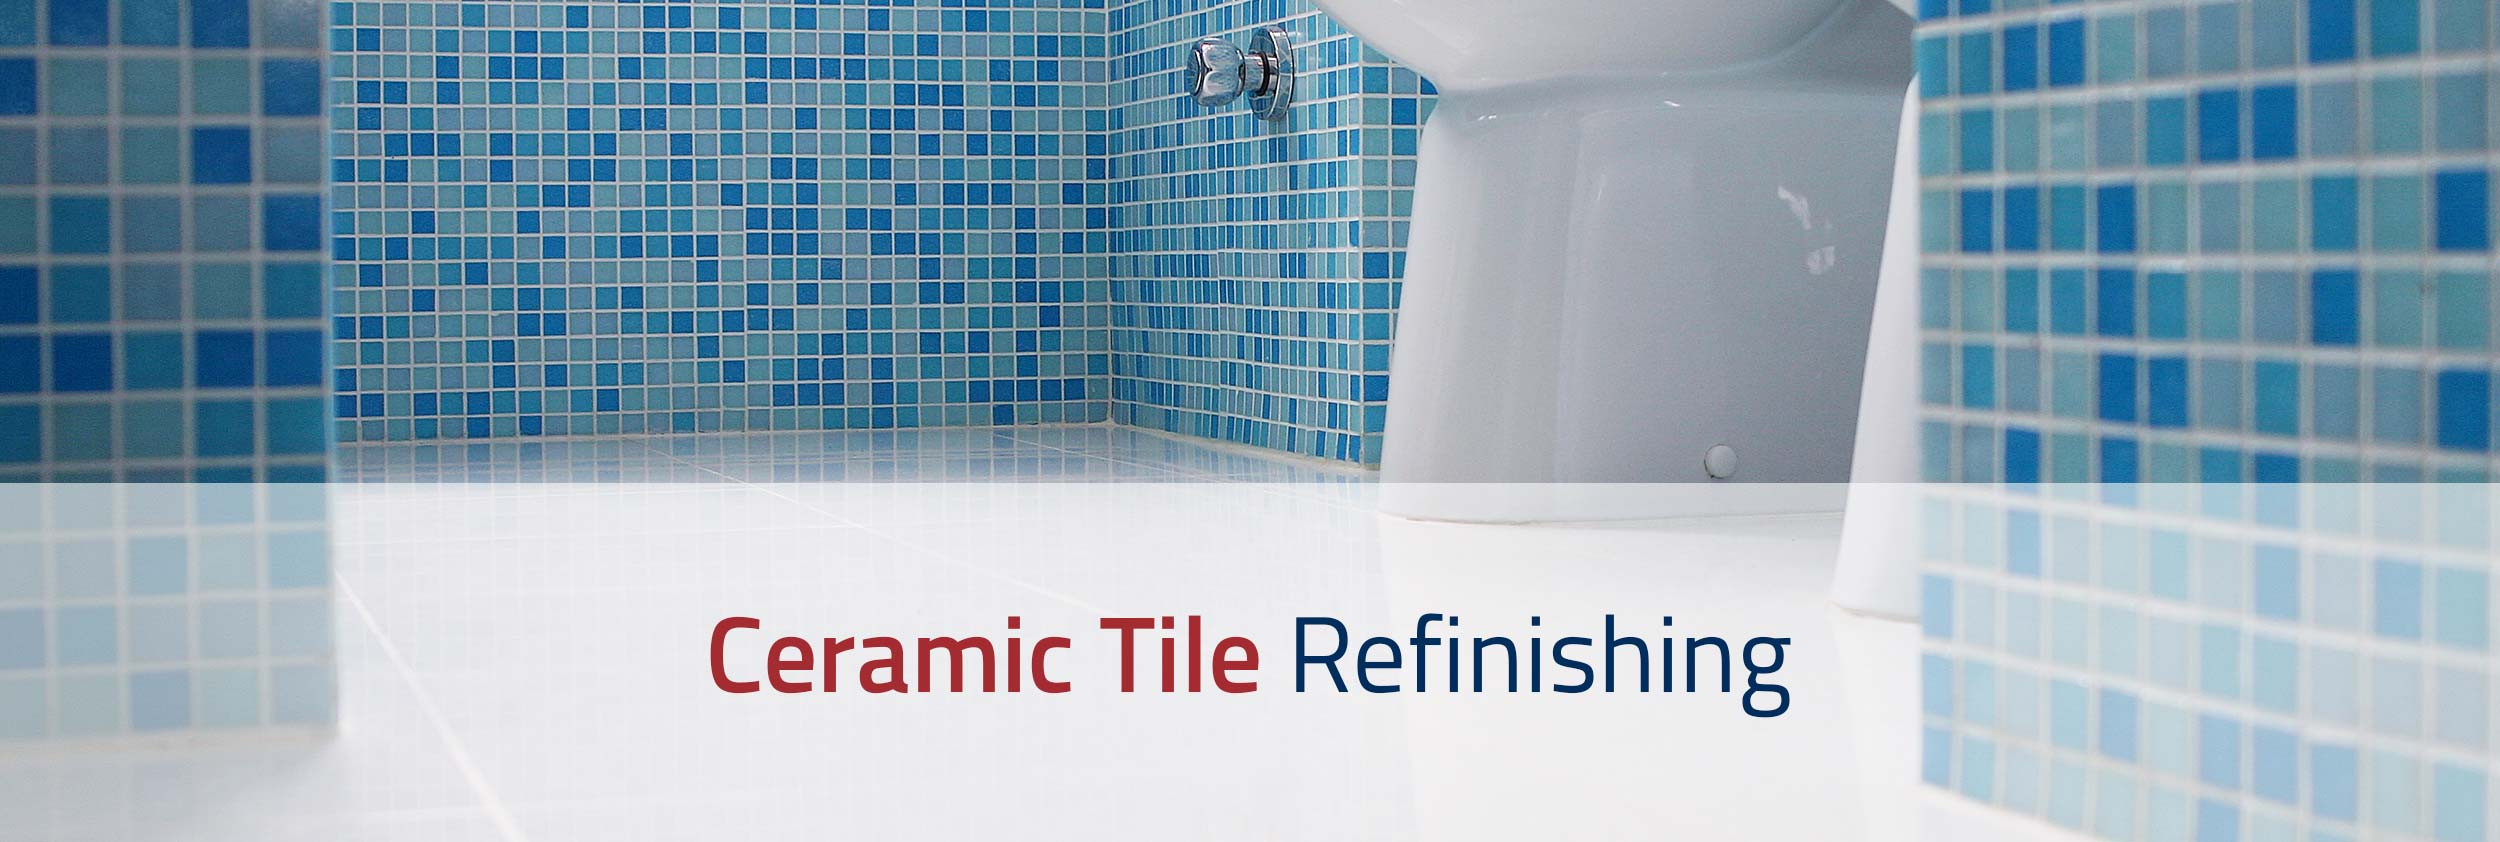 Ceramic Tile Refinishing Marlton NJ